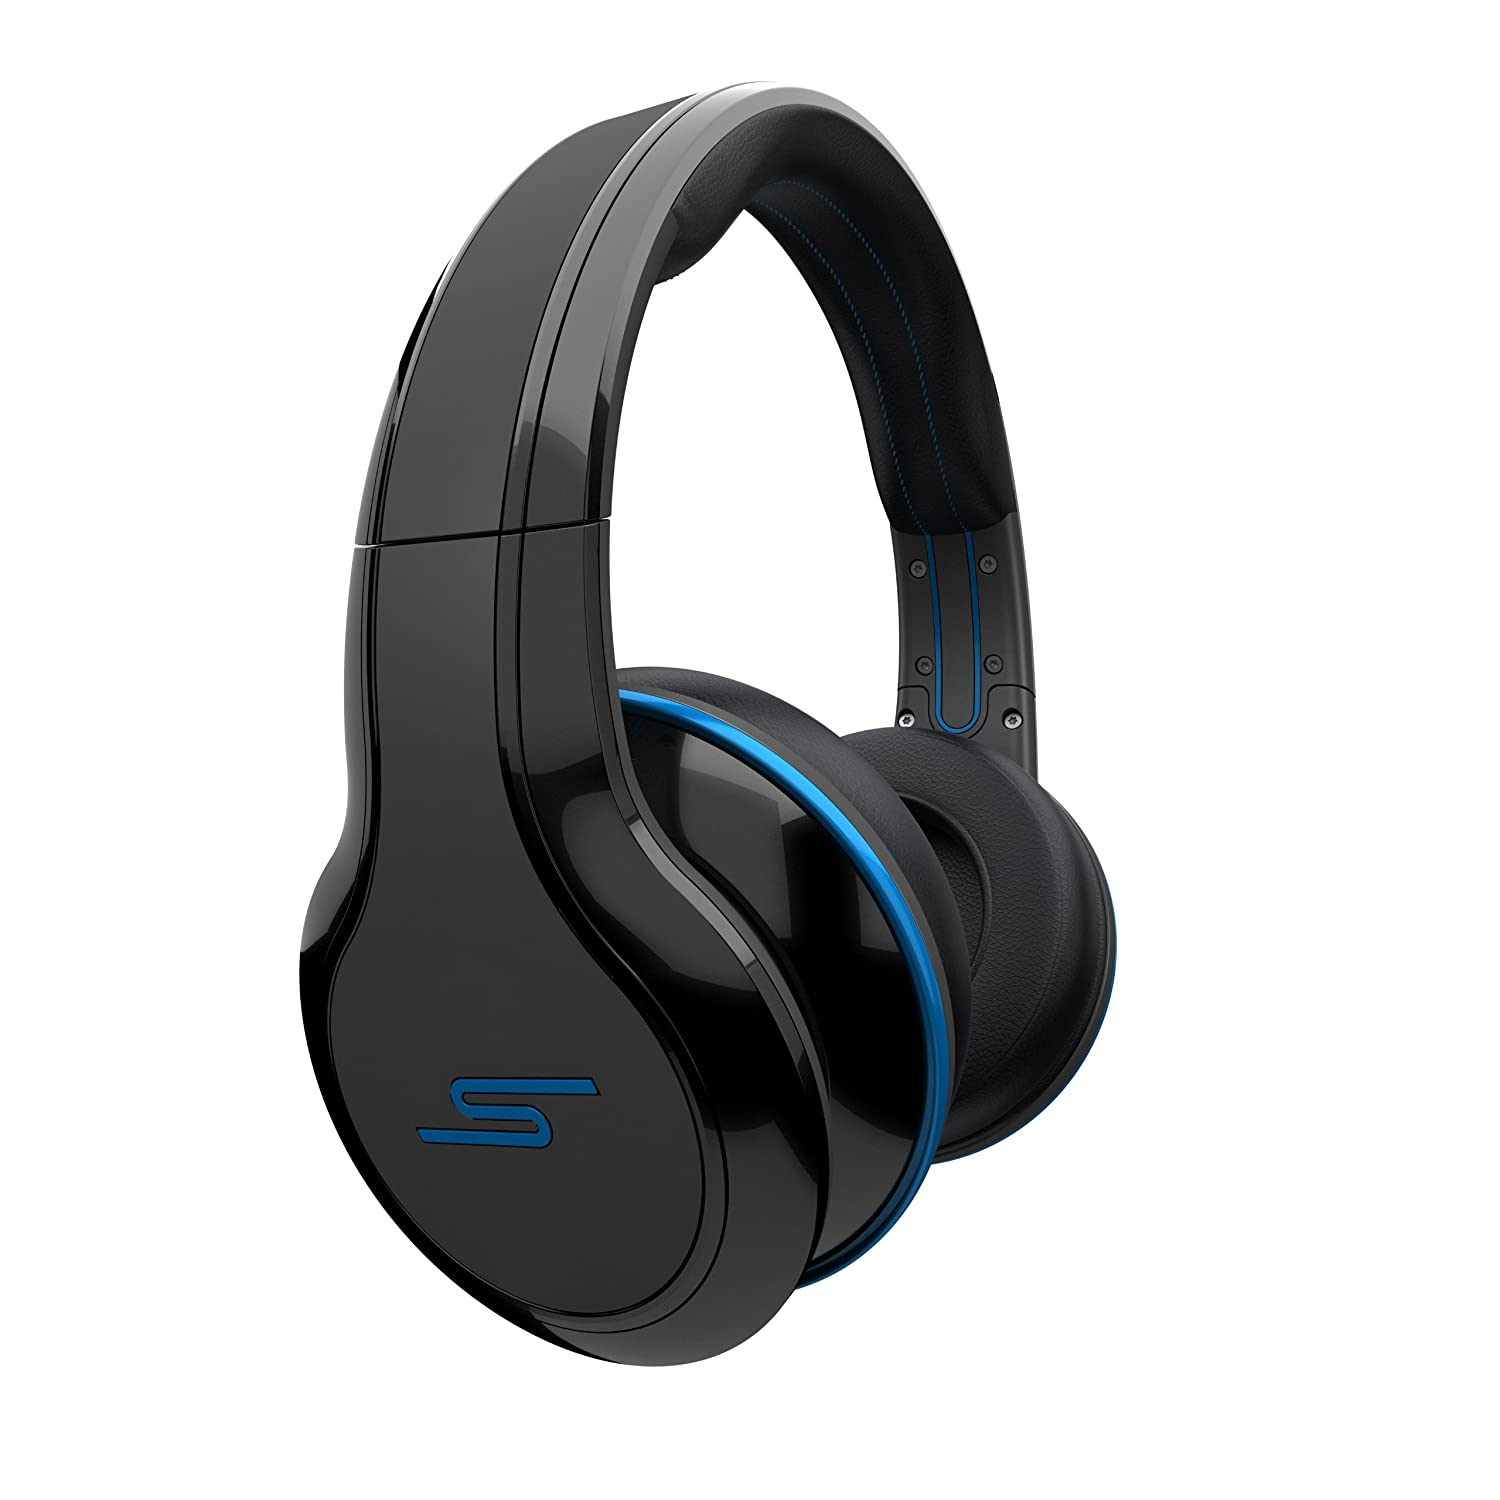 Amazon.com: STREET by 50 Cent Wired Over-Ear Headphones - Black by SMS